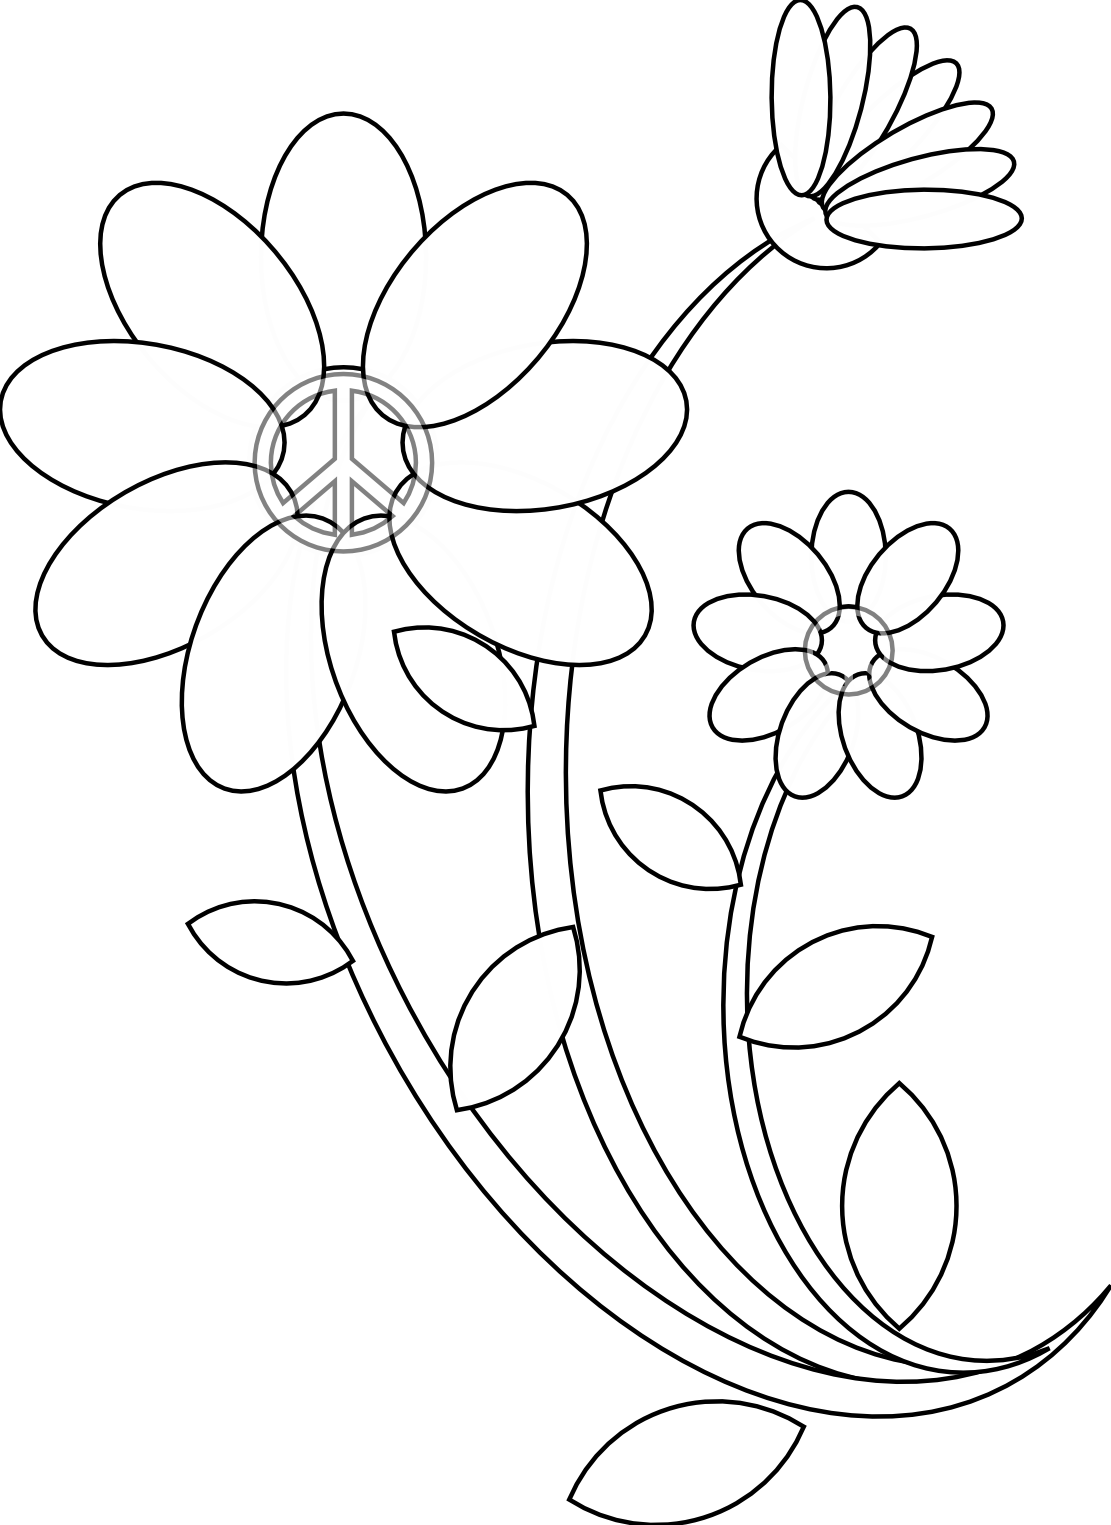 Line Art Flowers Images : Line art flower clipart best